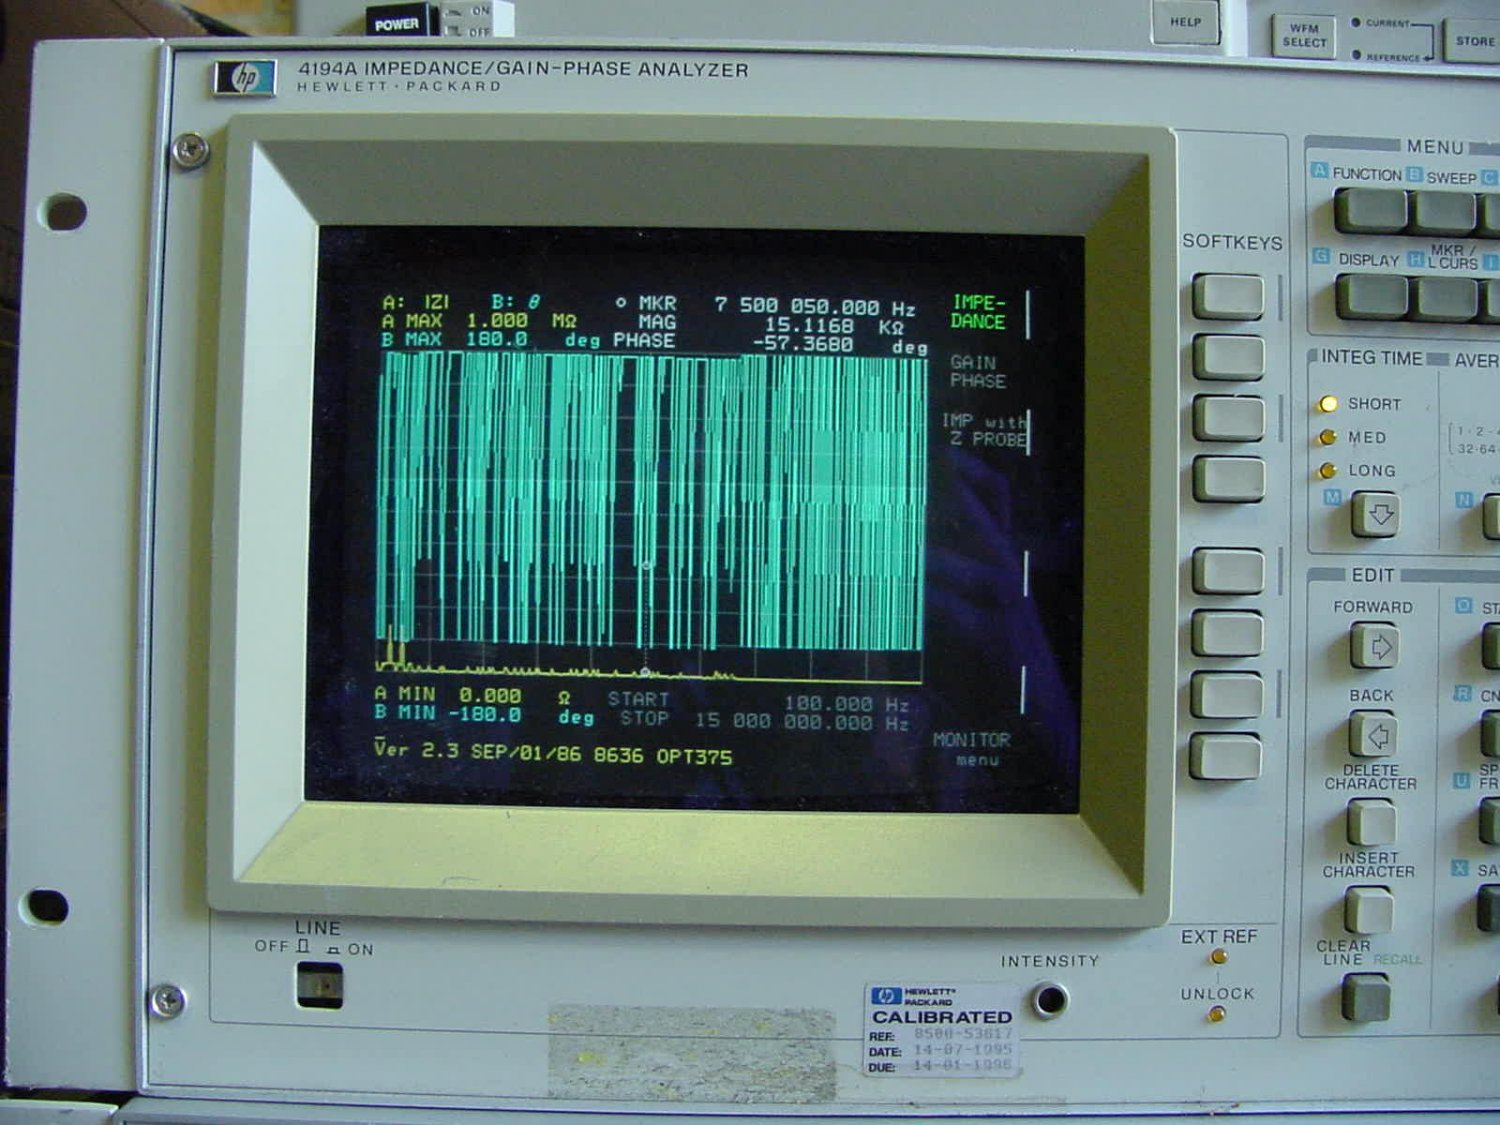 Hewlett Packard 4194A Impedance/Gain-Phase Analyzer